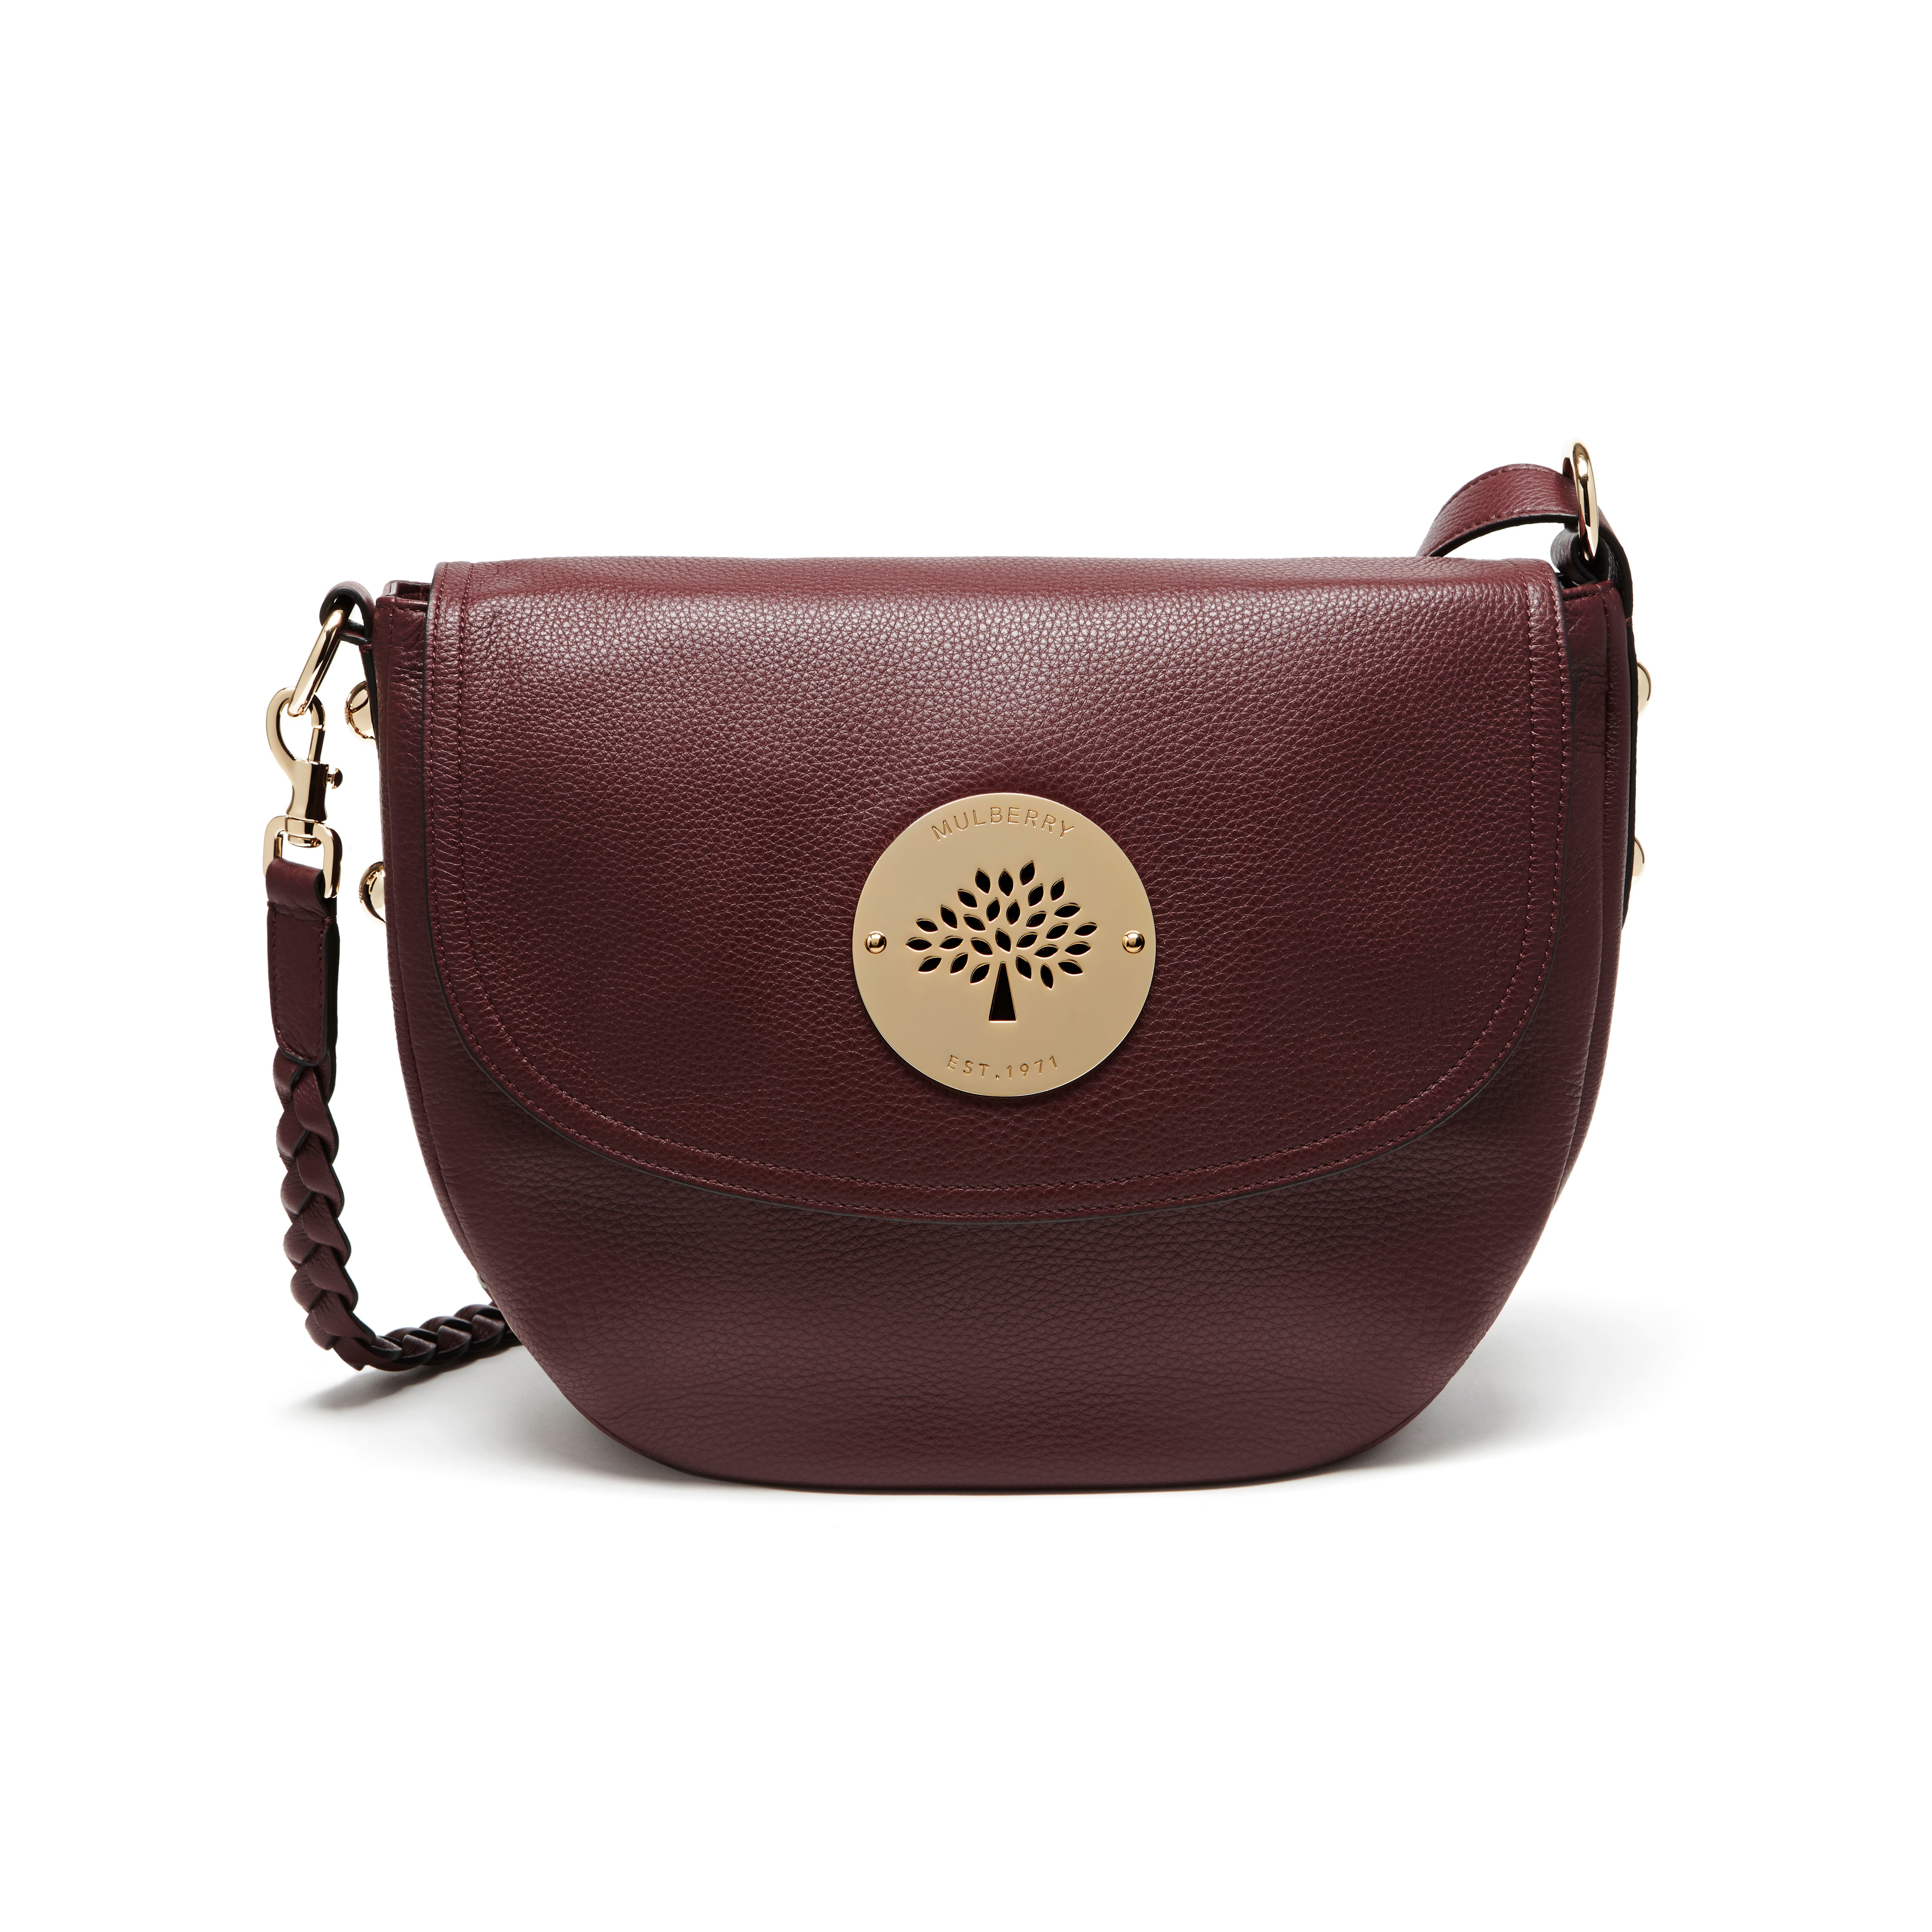 Mulberry Daria Satchel in Red - Lyst d7b239932ddc8